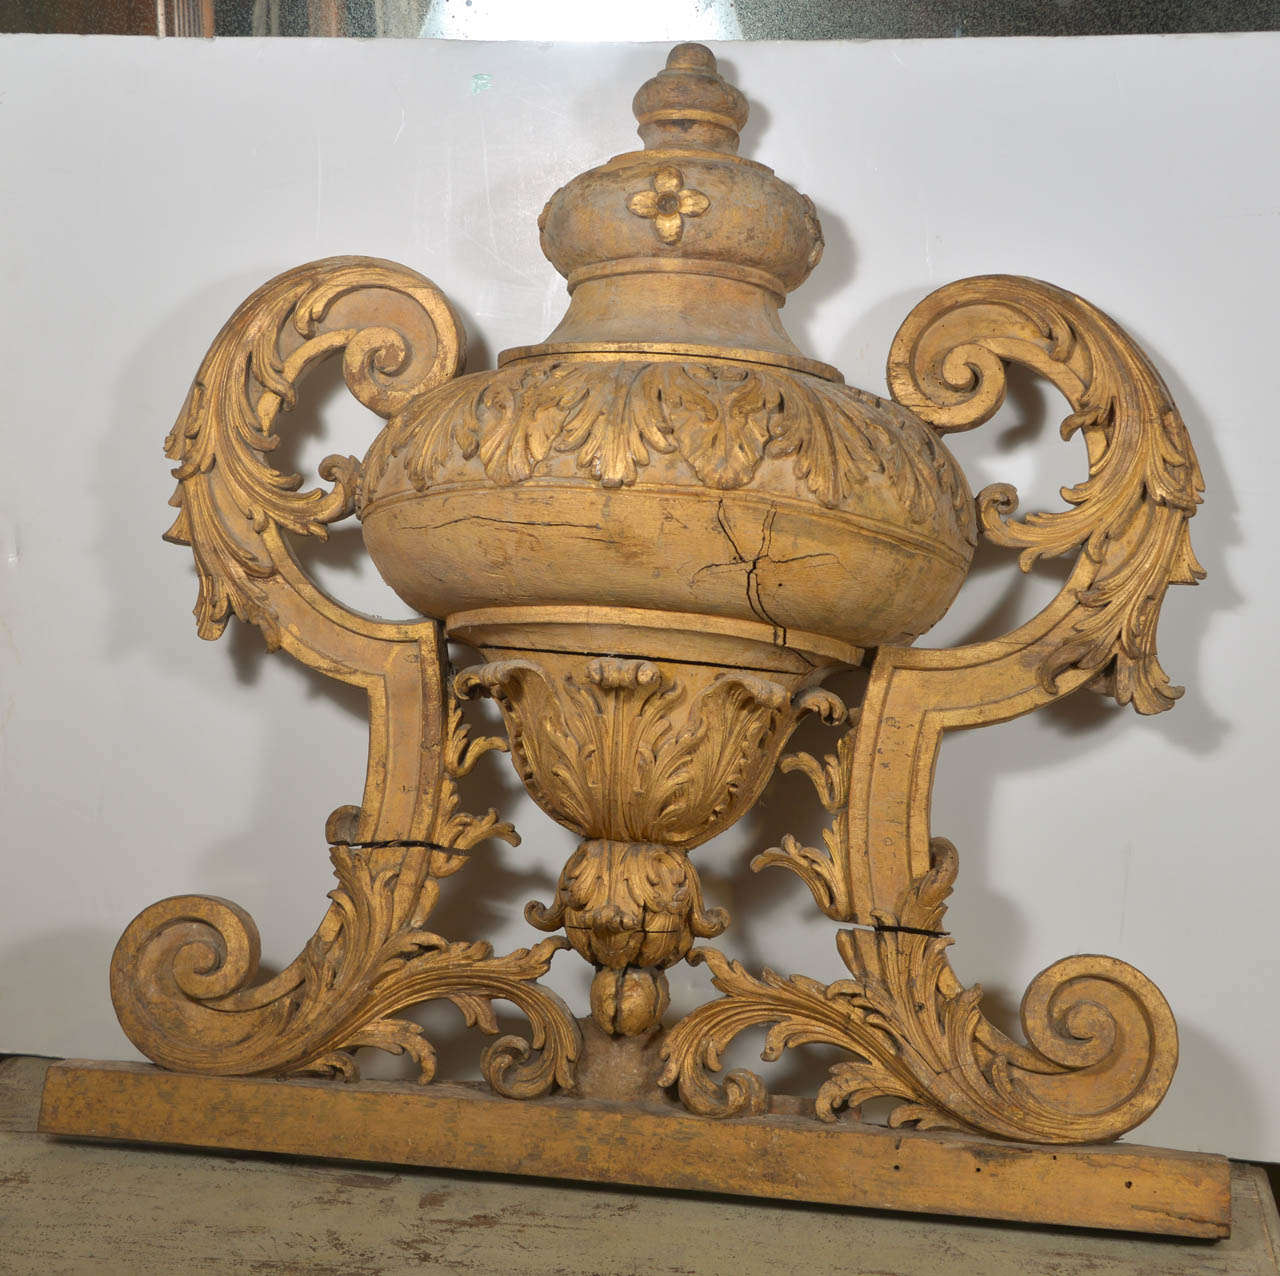 Large, beautifully carved and gilded large urn motif architectural fragment from Italy.